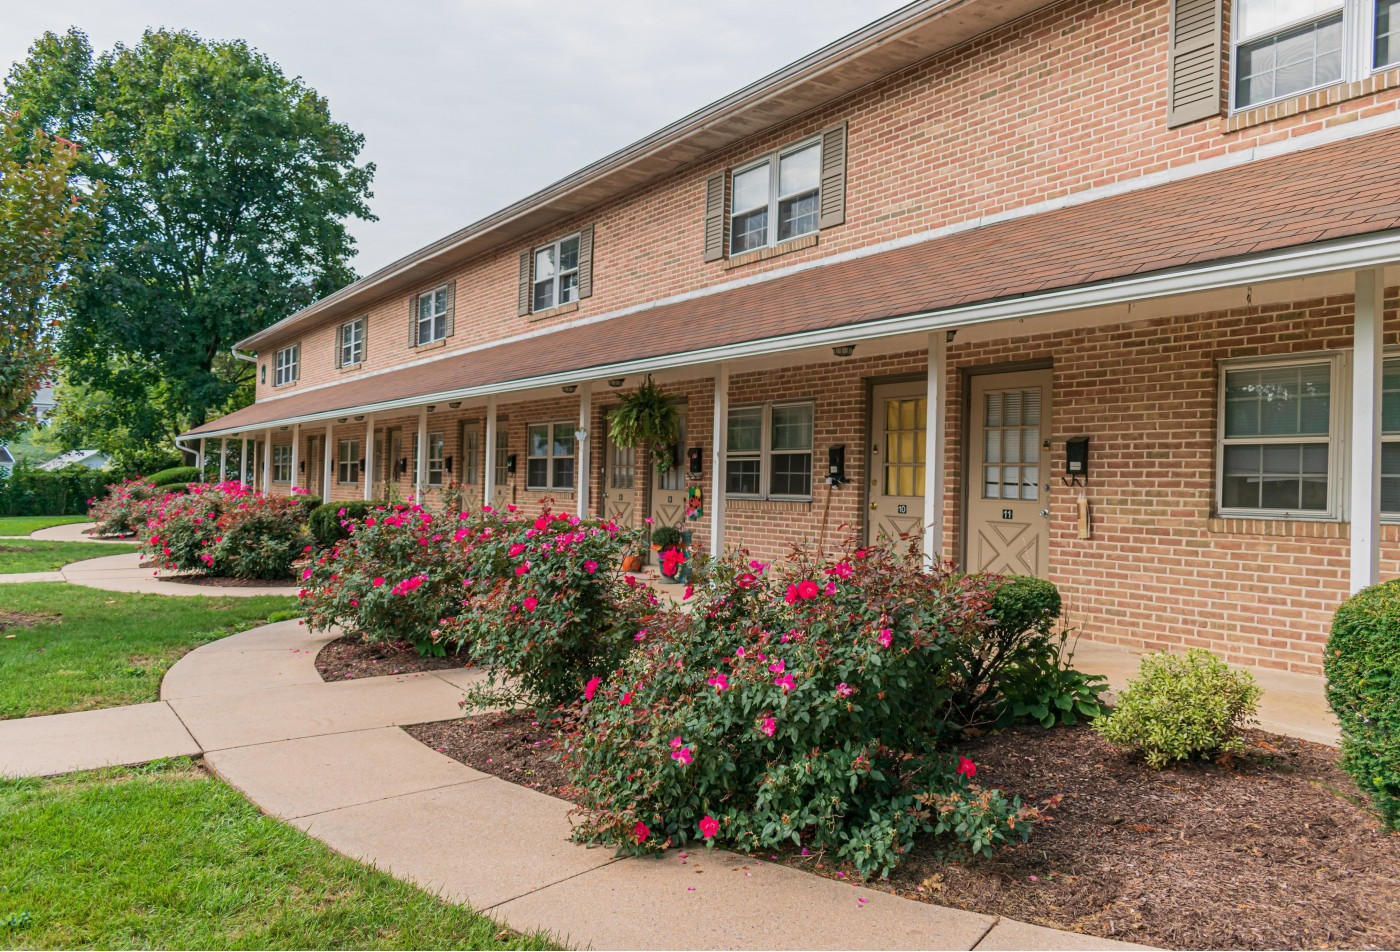 Apartments For Rent near Reading Pennsylvania | Park Court Apartments